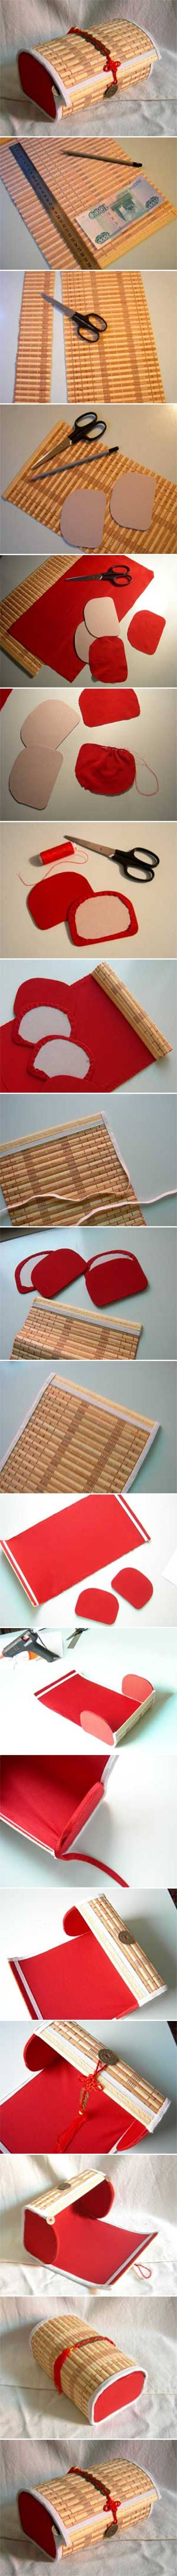 DIY Bamboo Placemat Box  - I knew keeping those bamboo placemats would pay off!